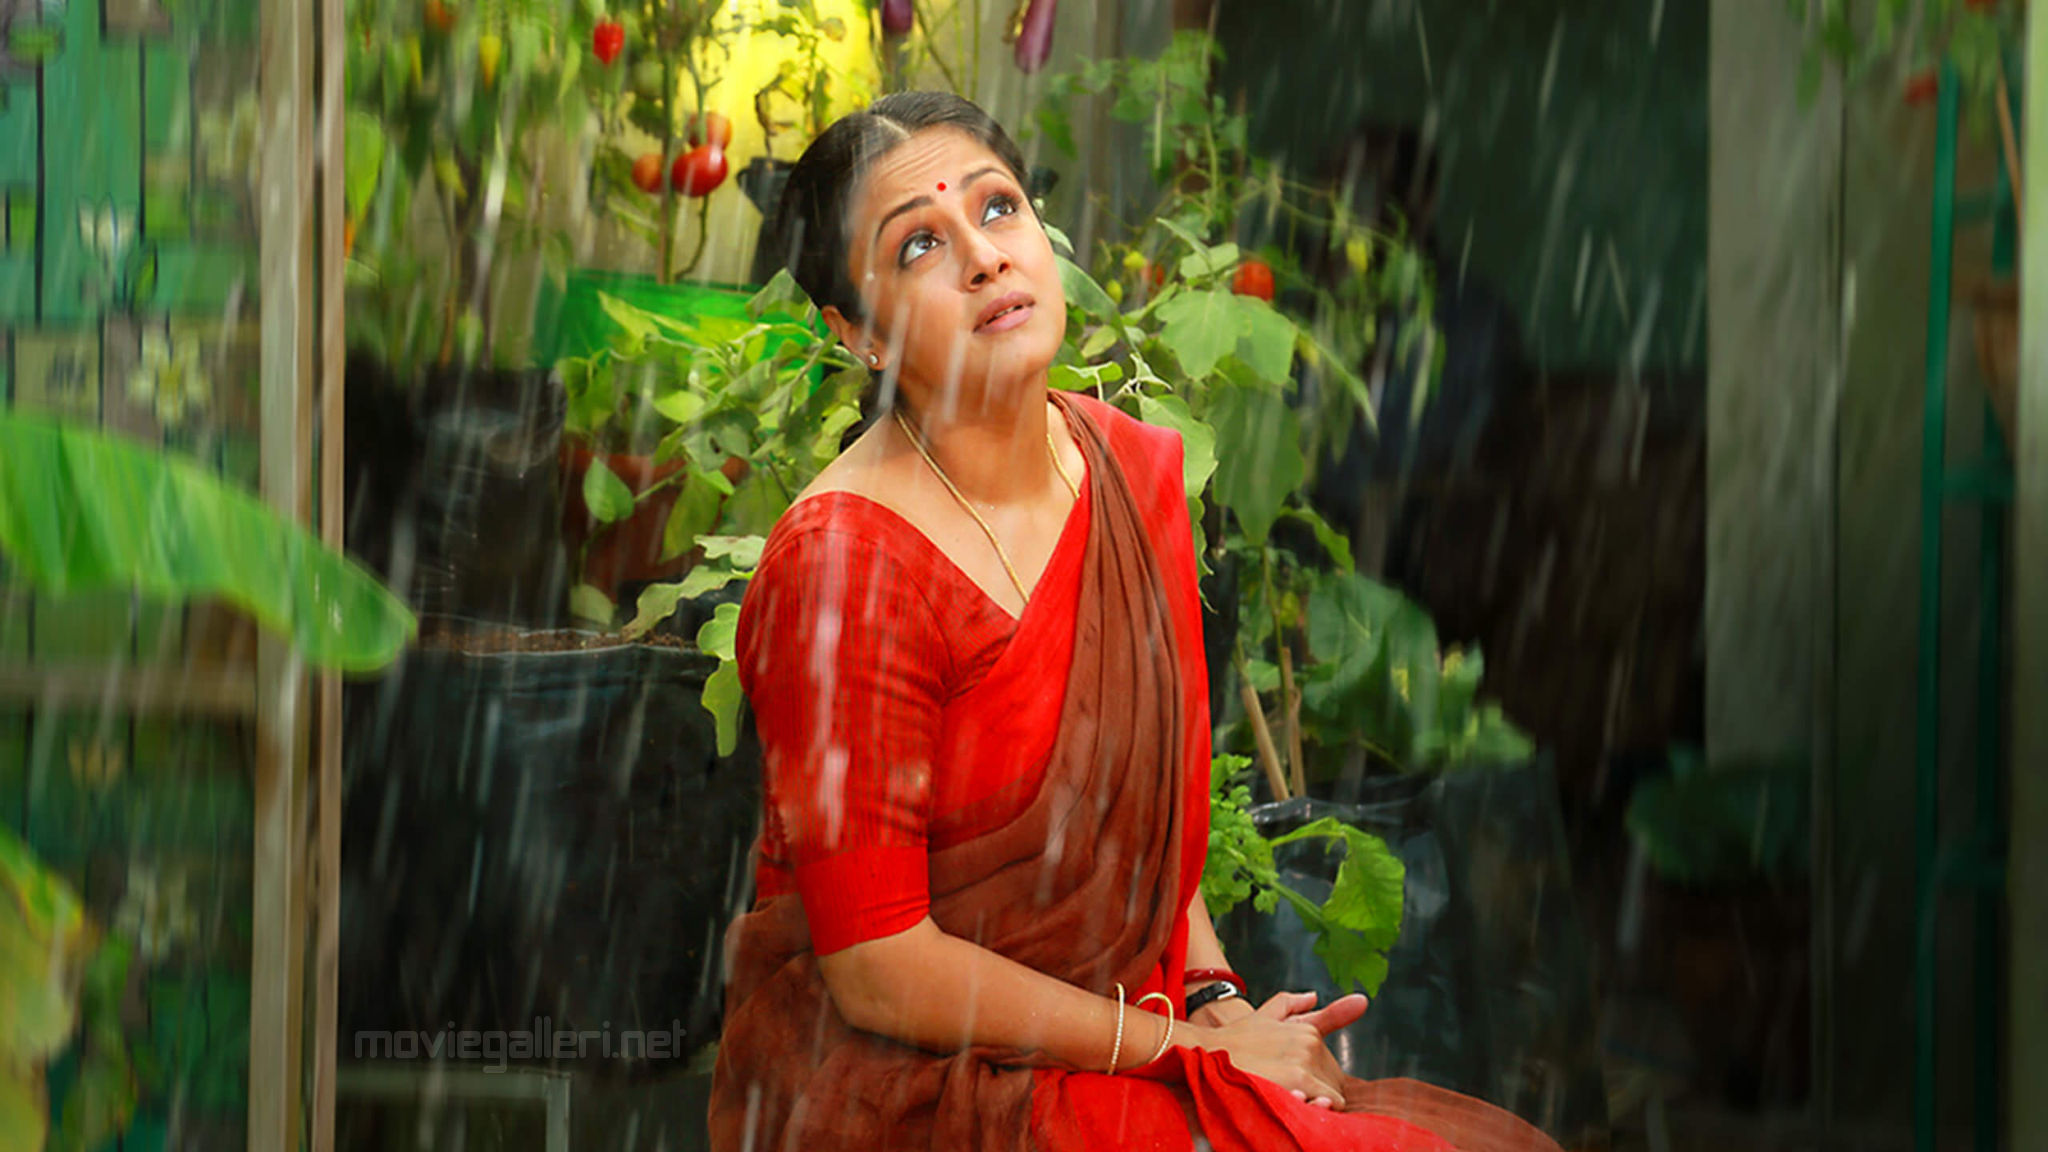 Actress Jyothika in Tumhari Sulu Tamil Remake Vidya Balan movie